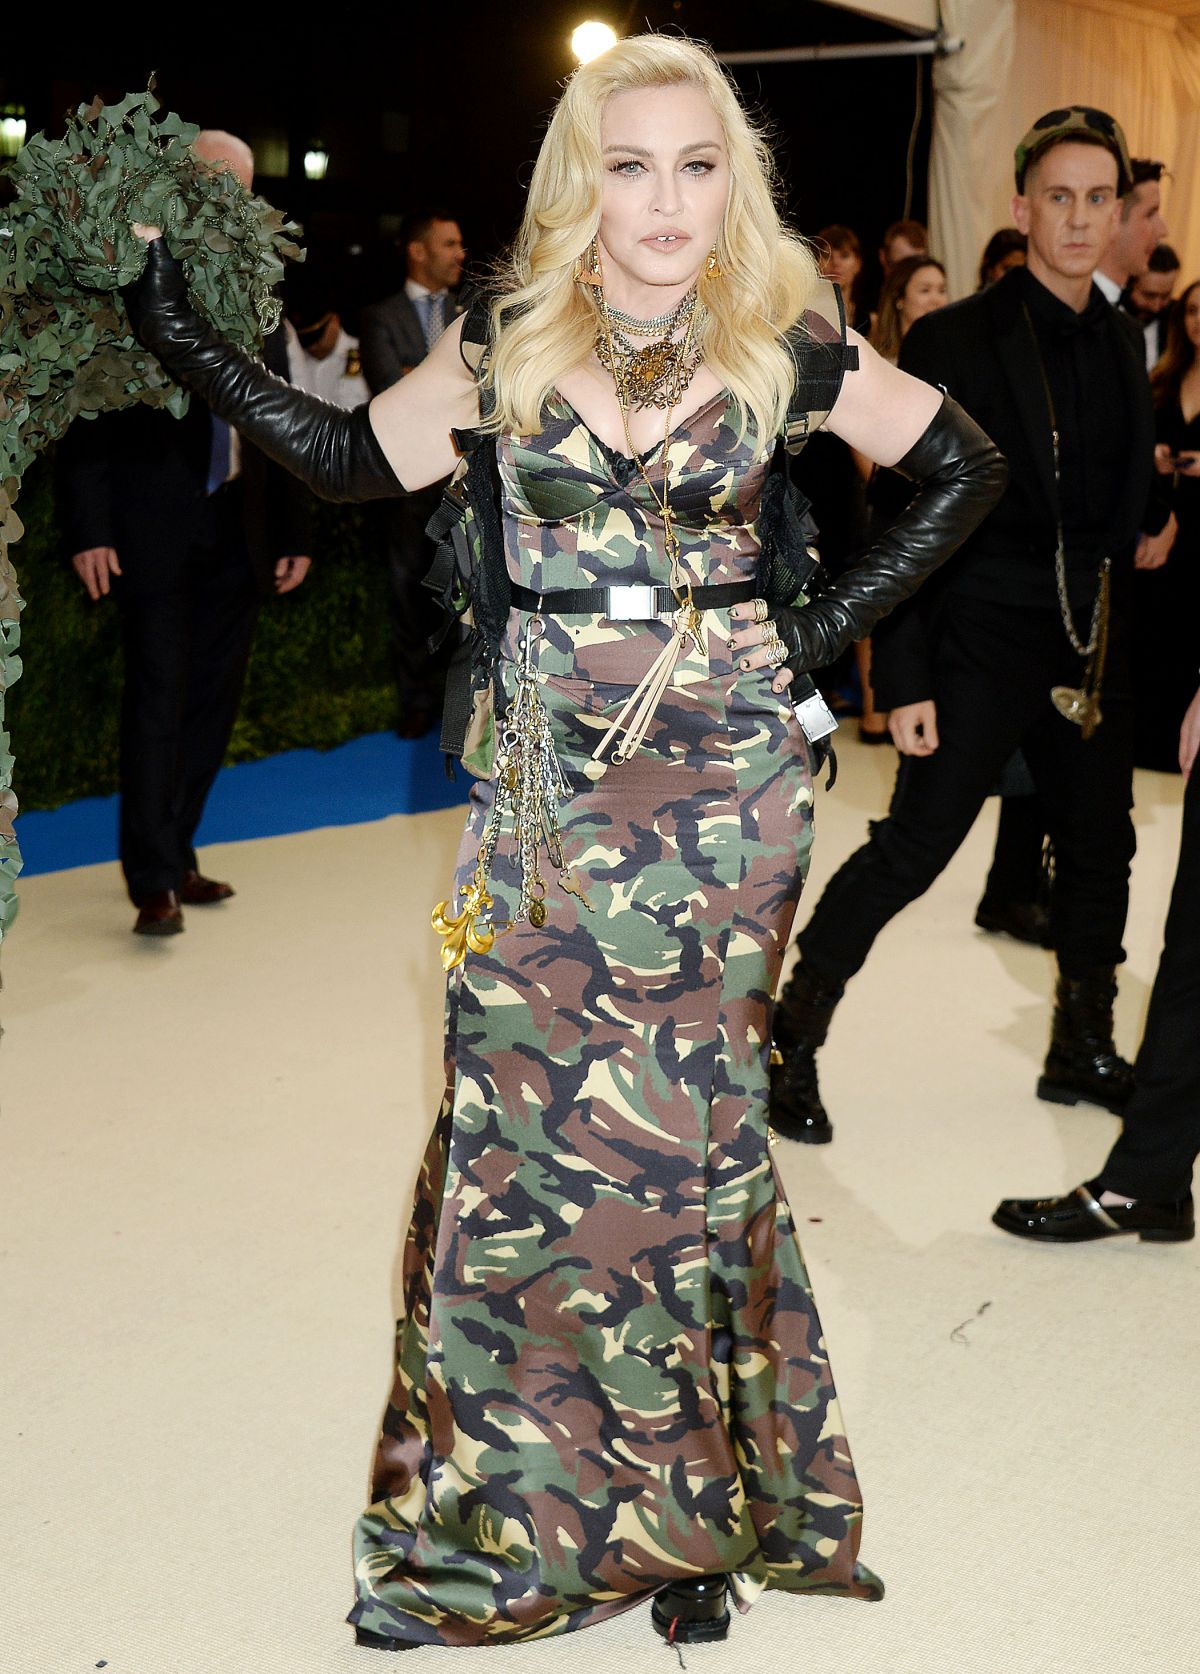 2017 New Kylie Cosmetics Lip Kit Vixen Merry Holiday: MADONNA At 2017 MET Gala In New York 05/01/2017